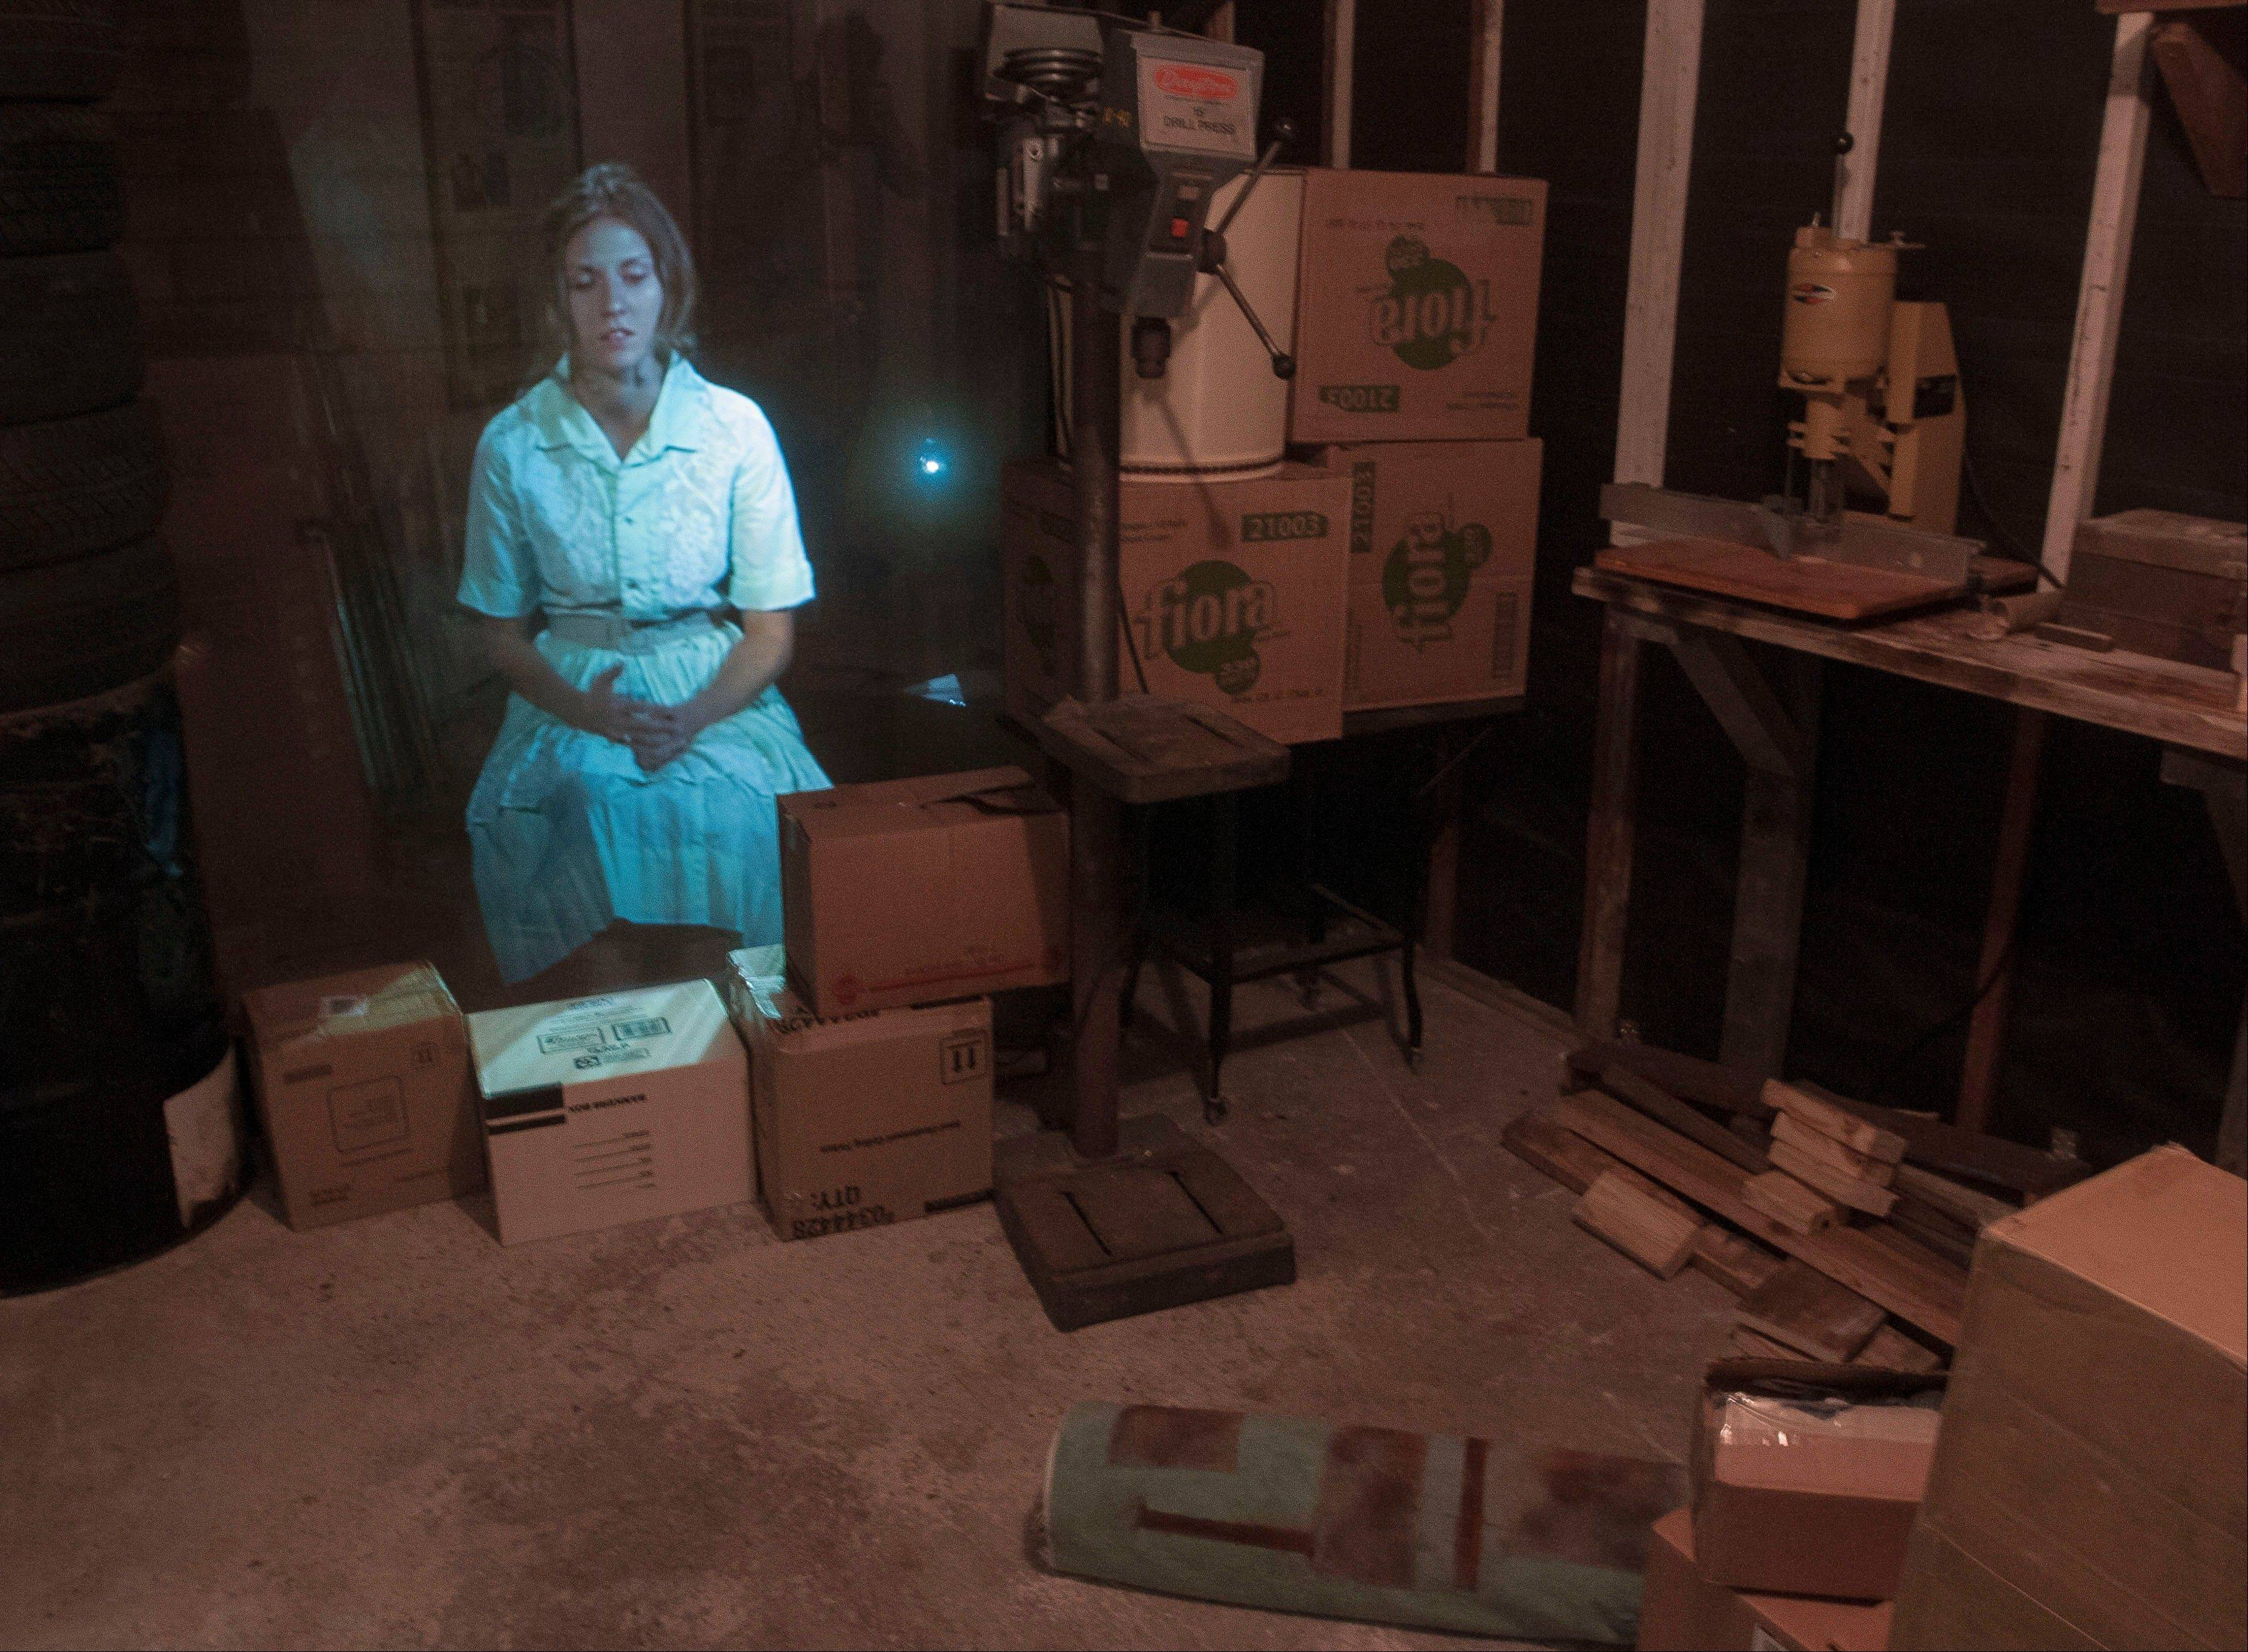 An image of an actress portraying Marina Oswald, wife of Lee Harvey Oswald, is projected in the garage of the Ruth Paine House Museum in Irving, Texas.